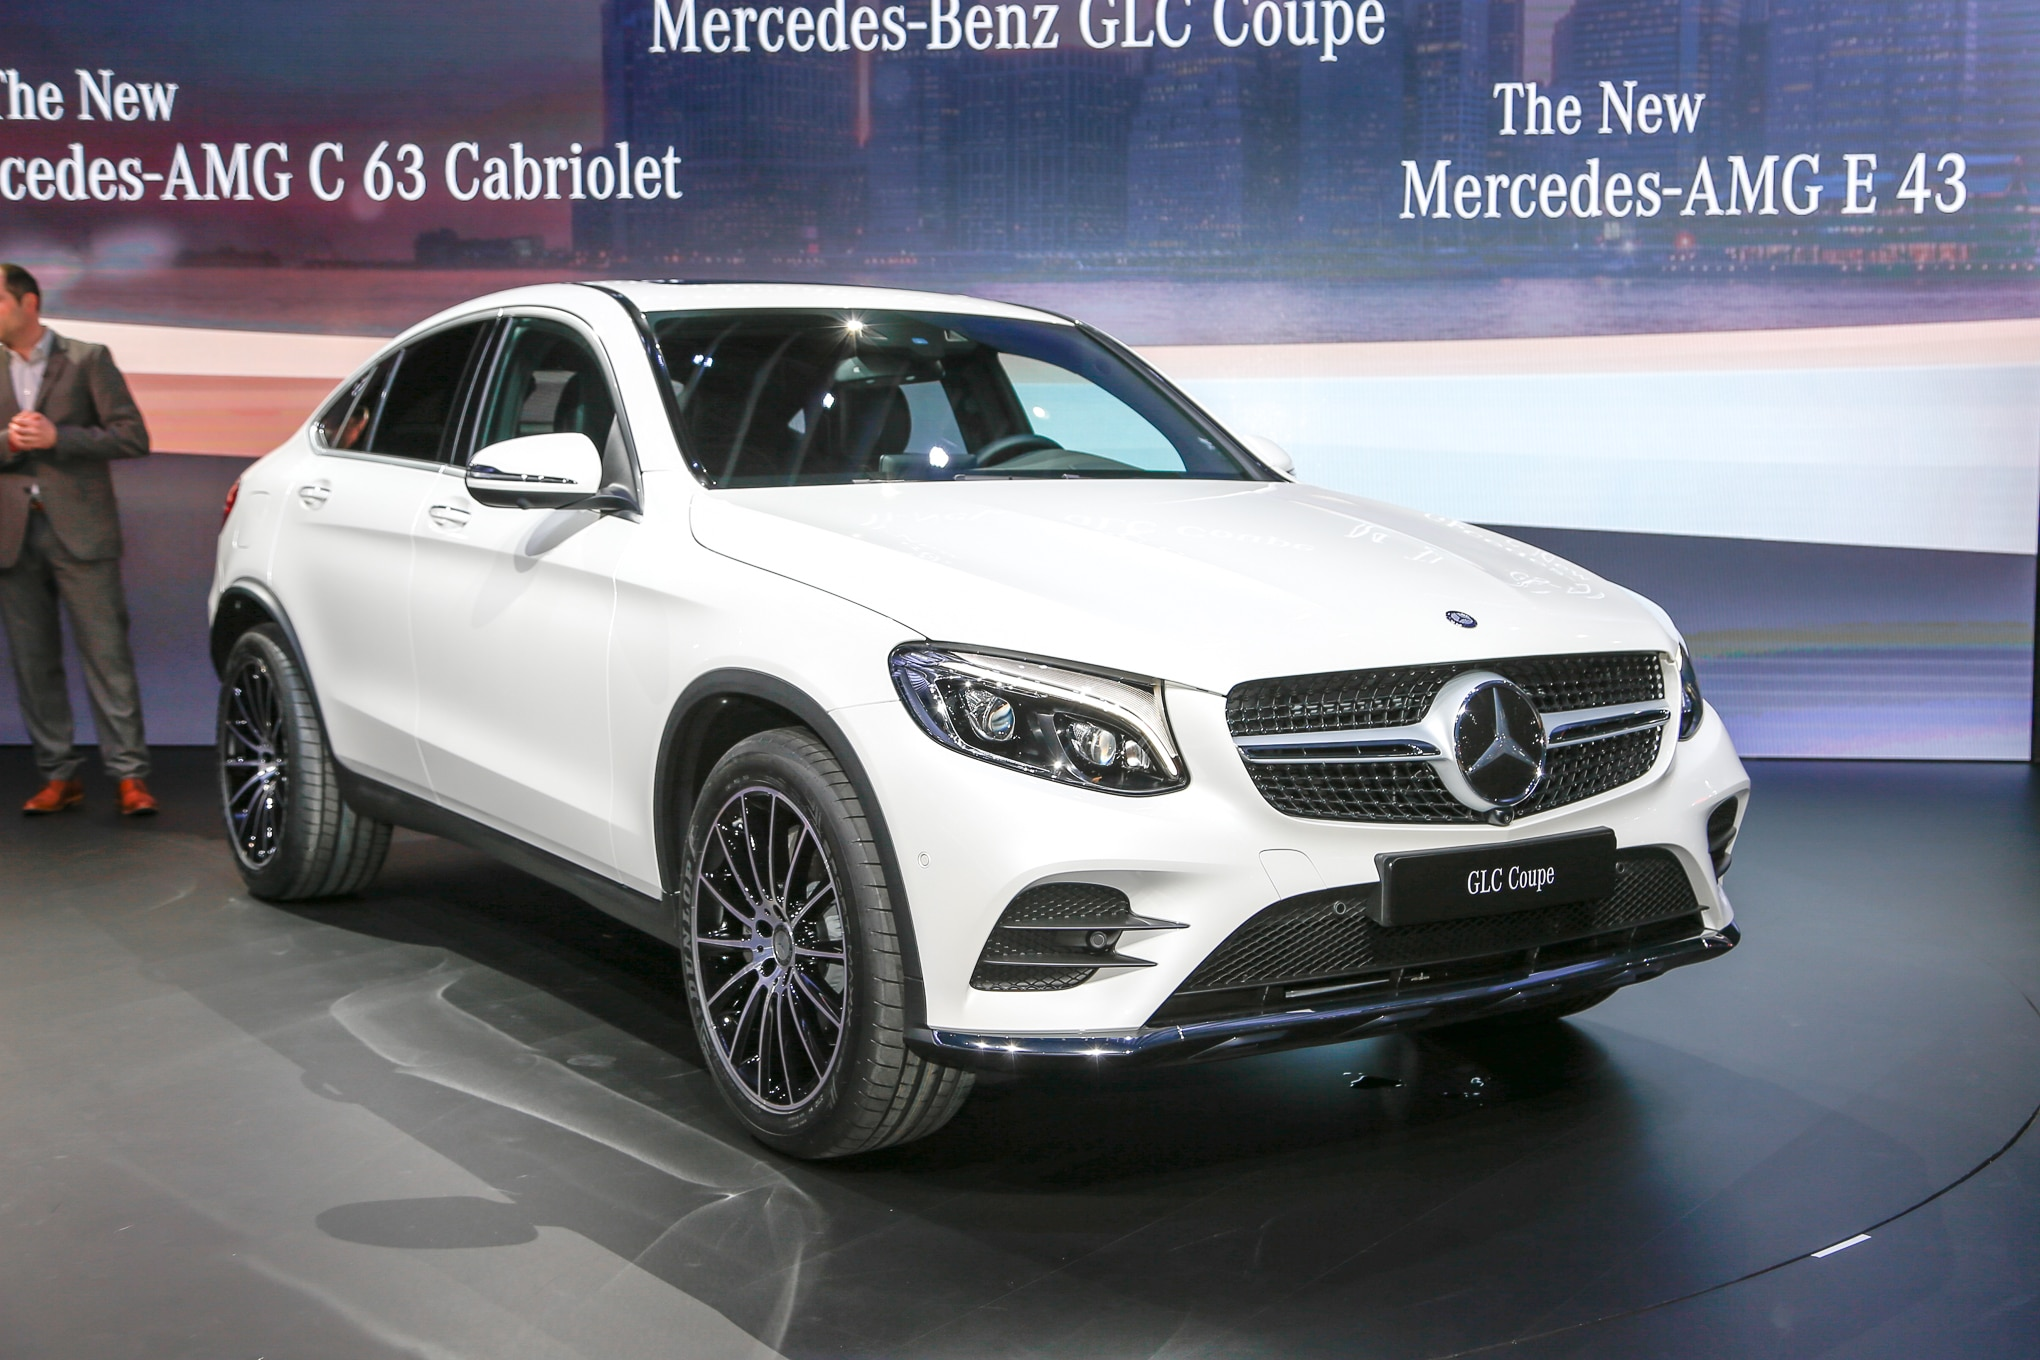 2017 mercedes benz glc coupe debuts in new york for Mercedes benz sedan 2017